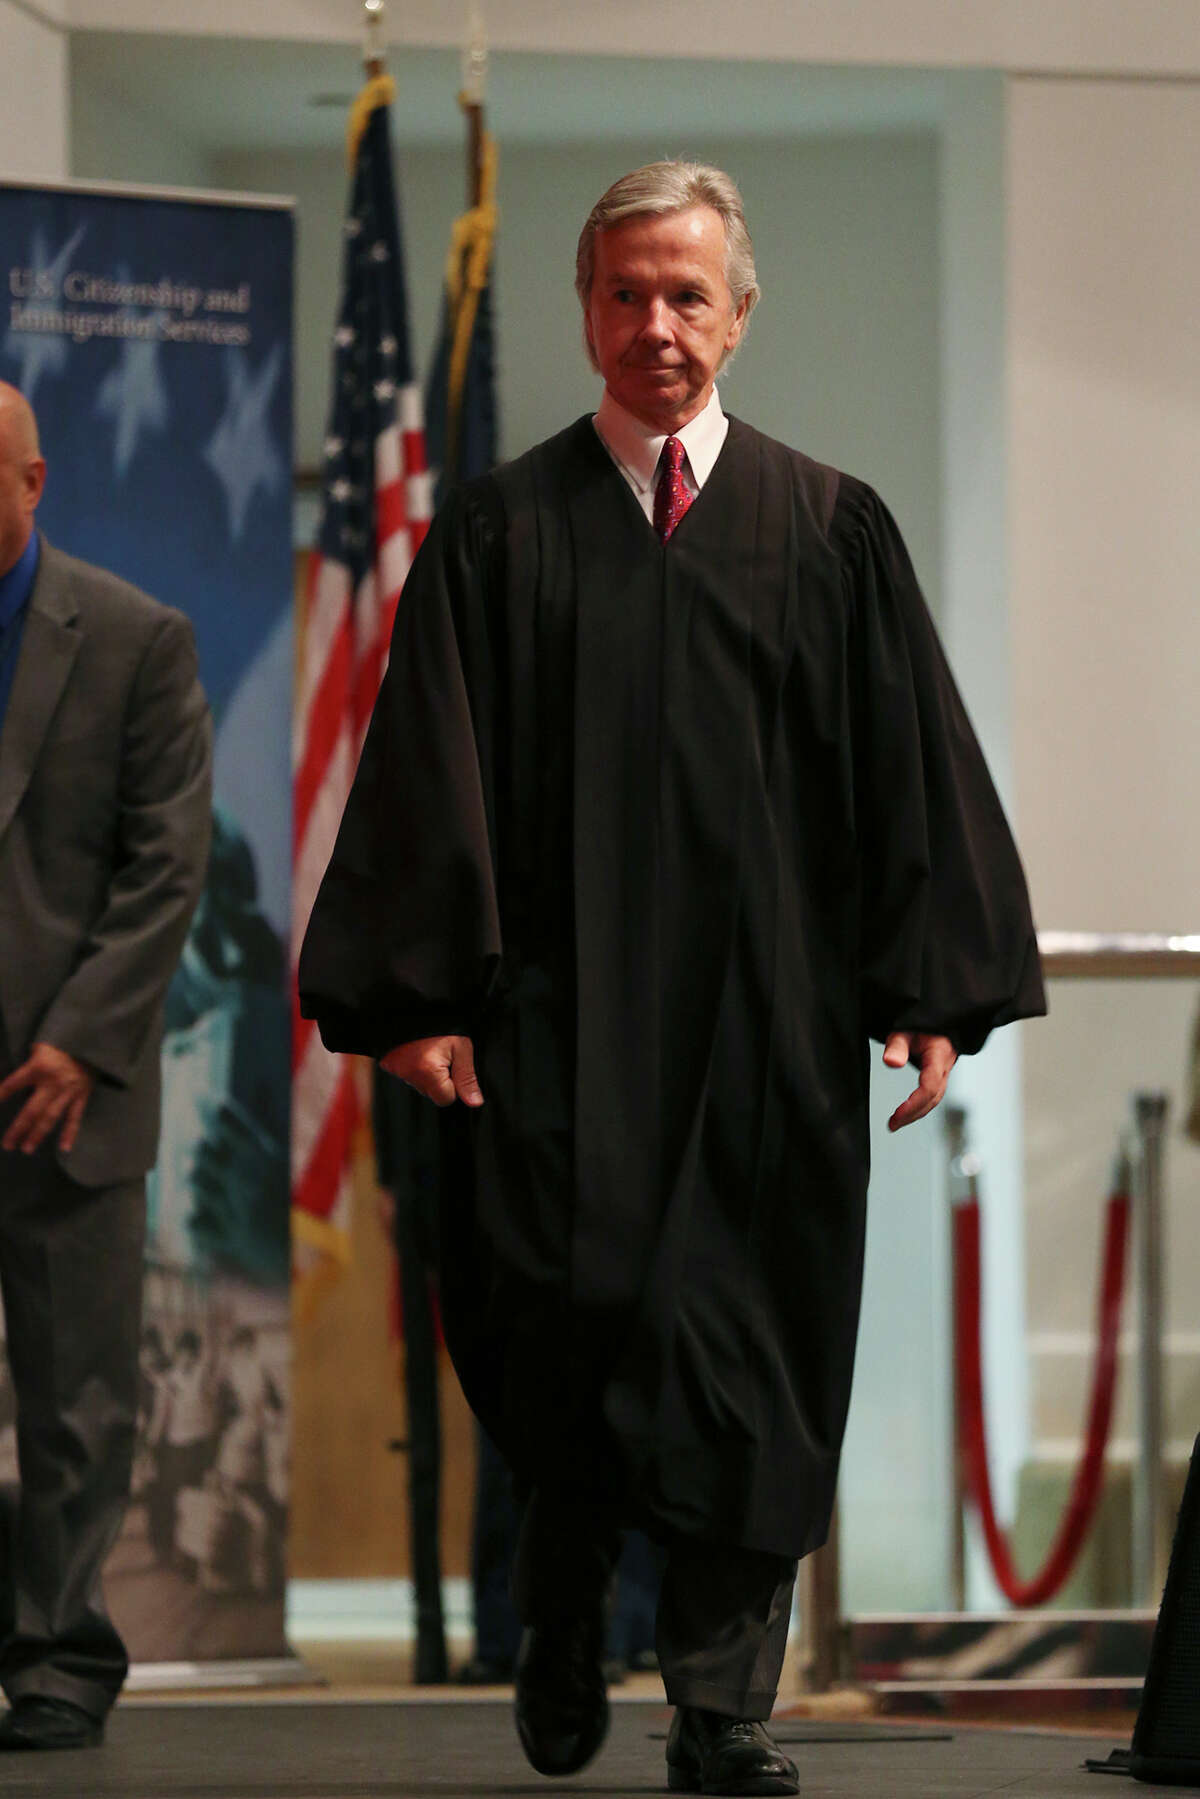 U.S. Magistrate Judge John W. Primomo arrives for one of two naturalization ceremonies at the Edgewood Theatre of Performing Arts for a naturalization ceremony, Thursday, August 20, 2015. The U.S. Citizens and Immigration Services held two ceremonies during the day for a total of 994 new citizens.